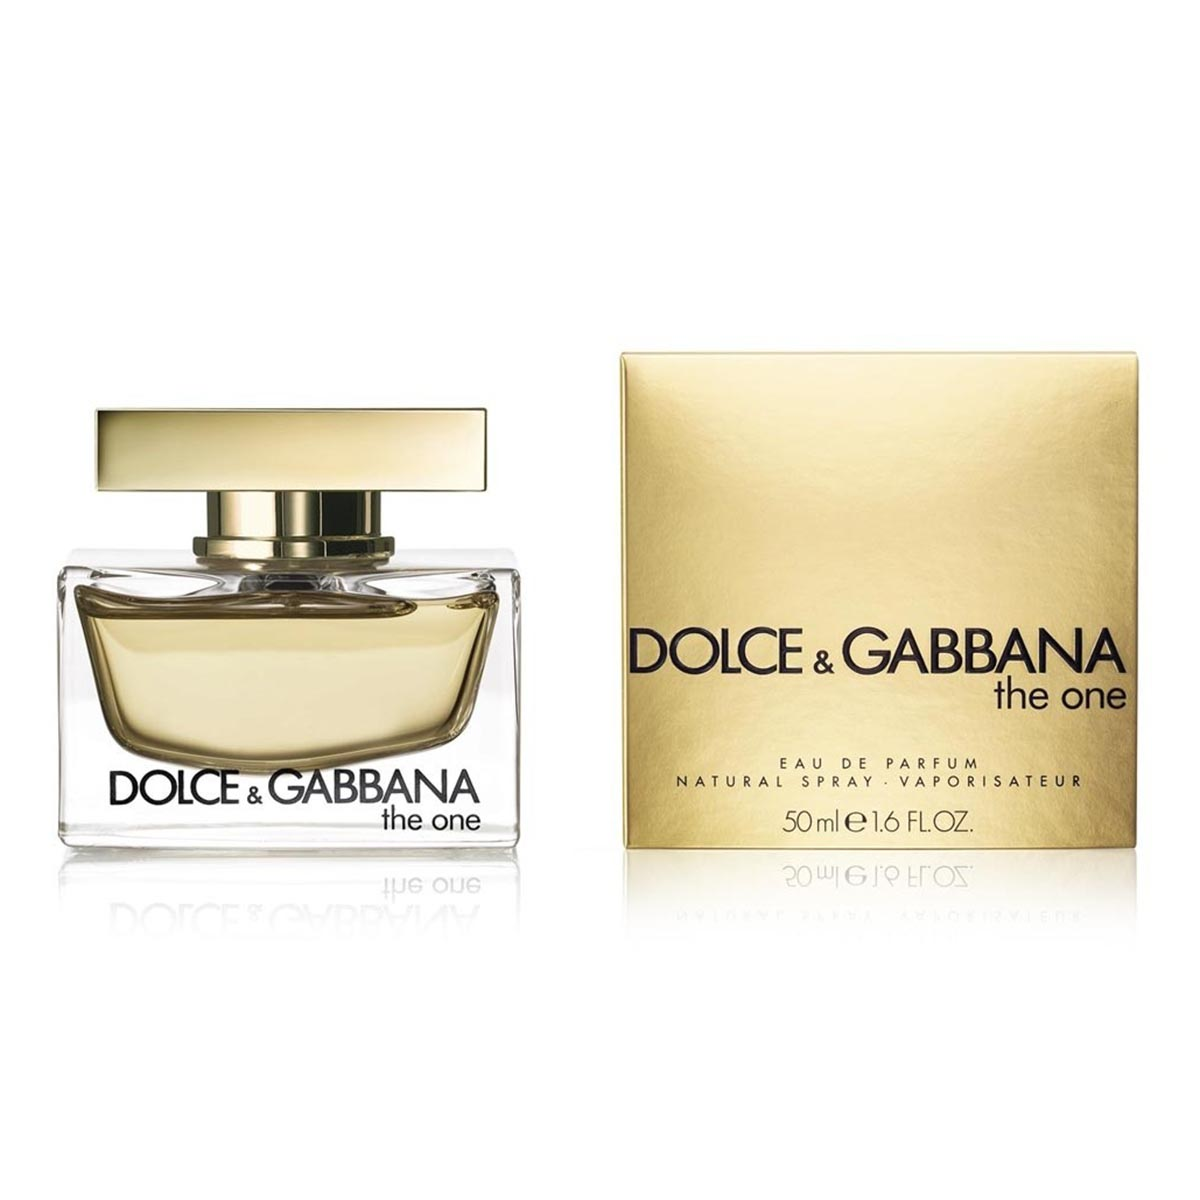 Dolce gabbana the one d g eau de parfum 50ml vaporizador